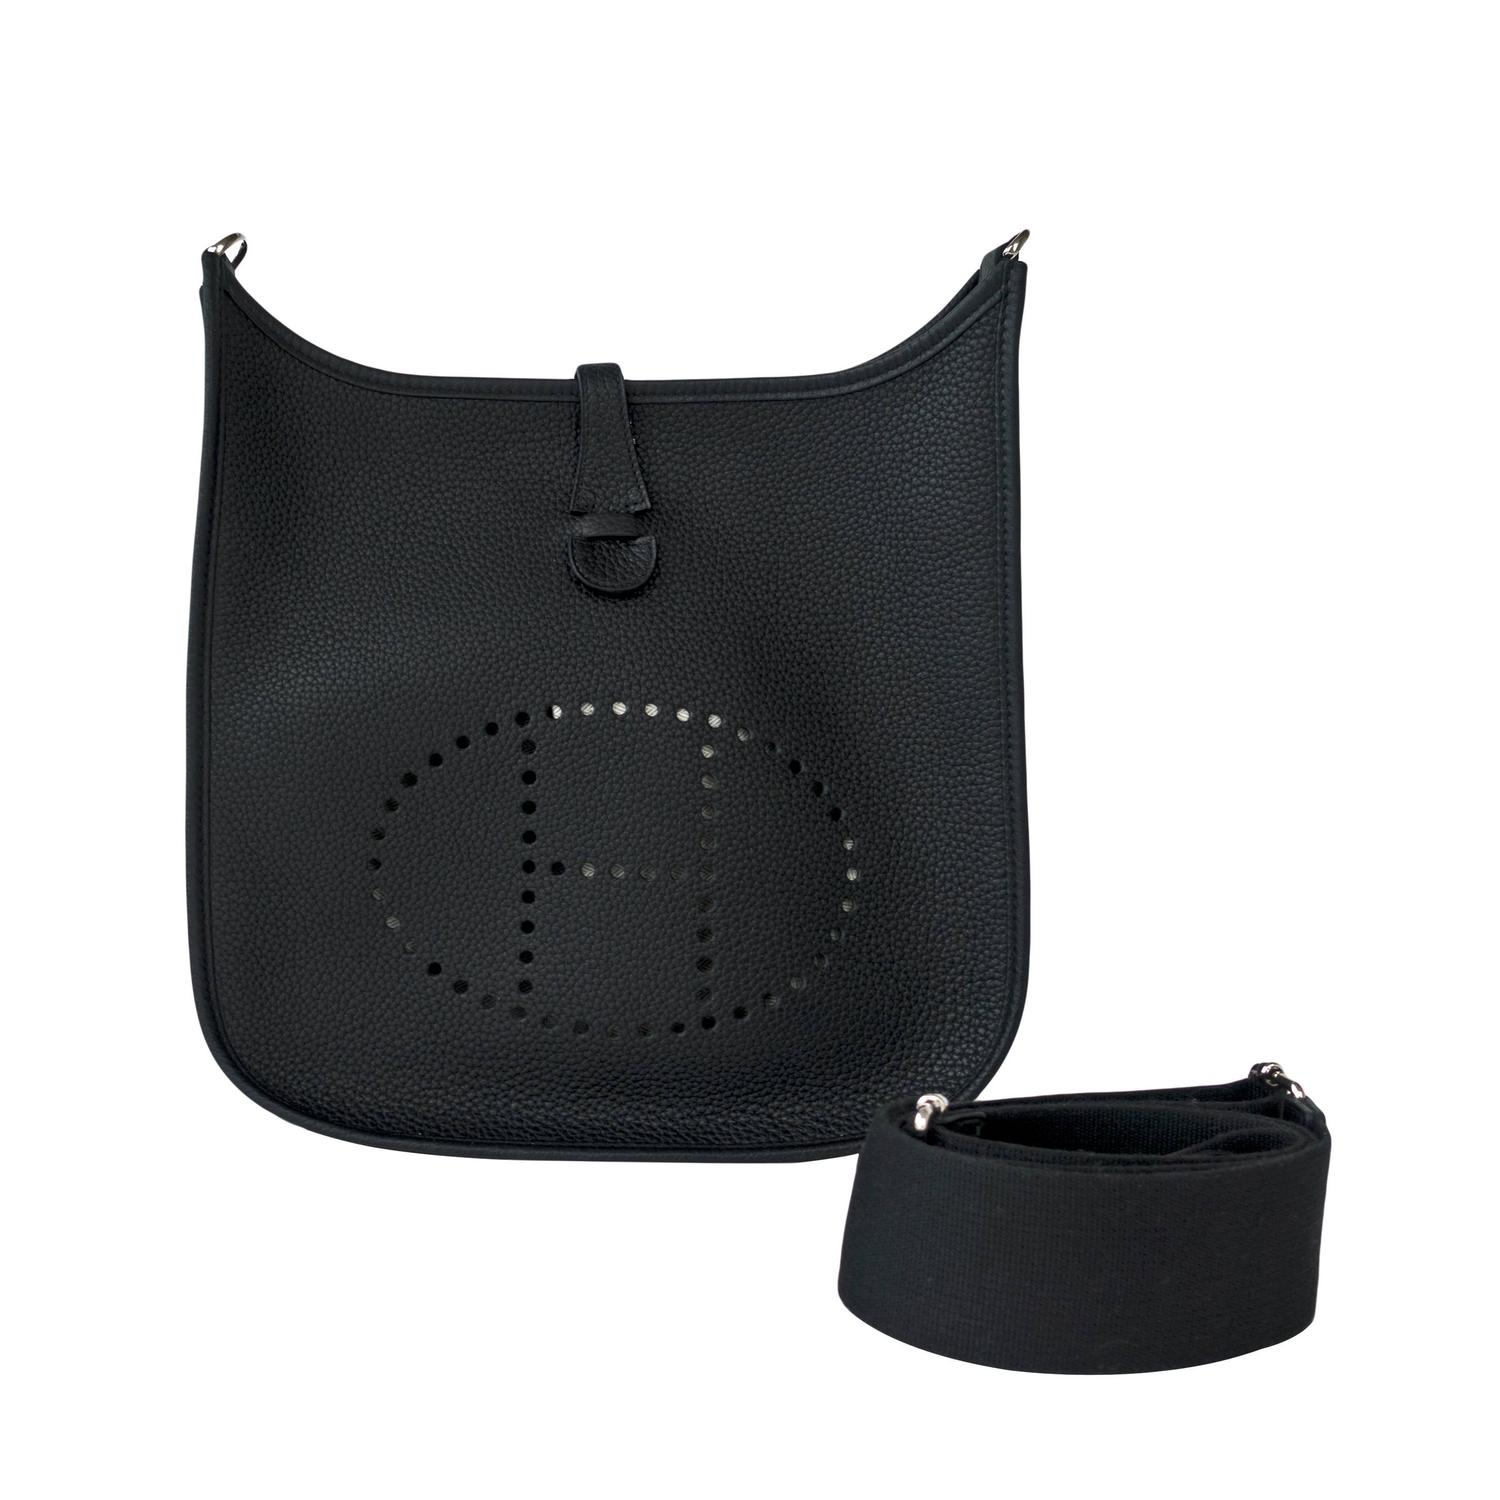 replica hermes handbags - Hermes Black Evelyne PM Cross-Body Messenger Bag Chic at 1stdibs